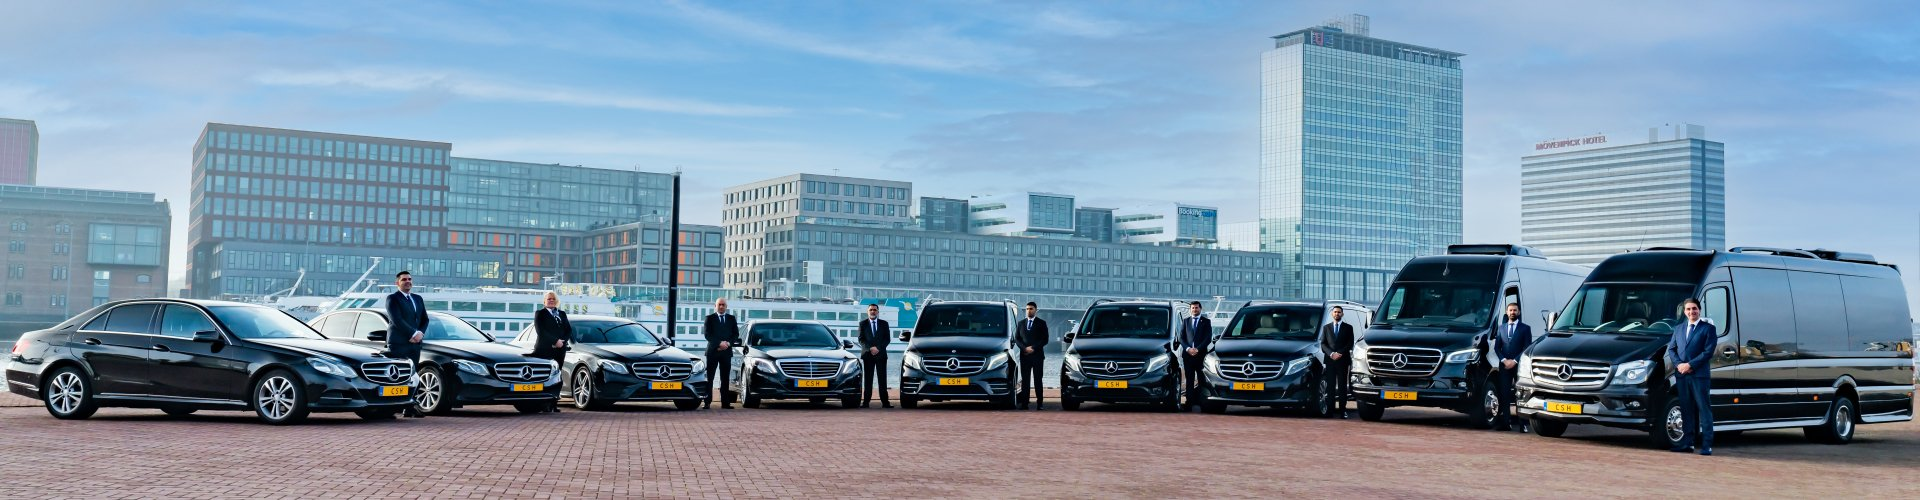 chauffeur services holland